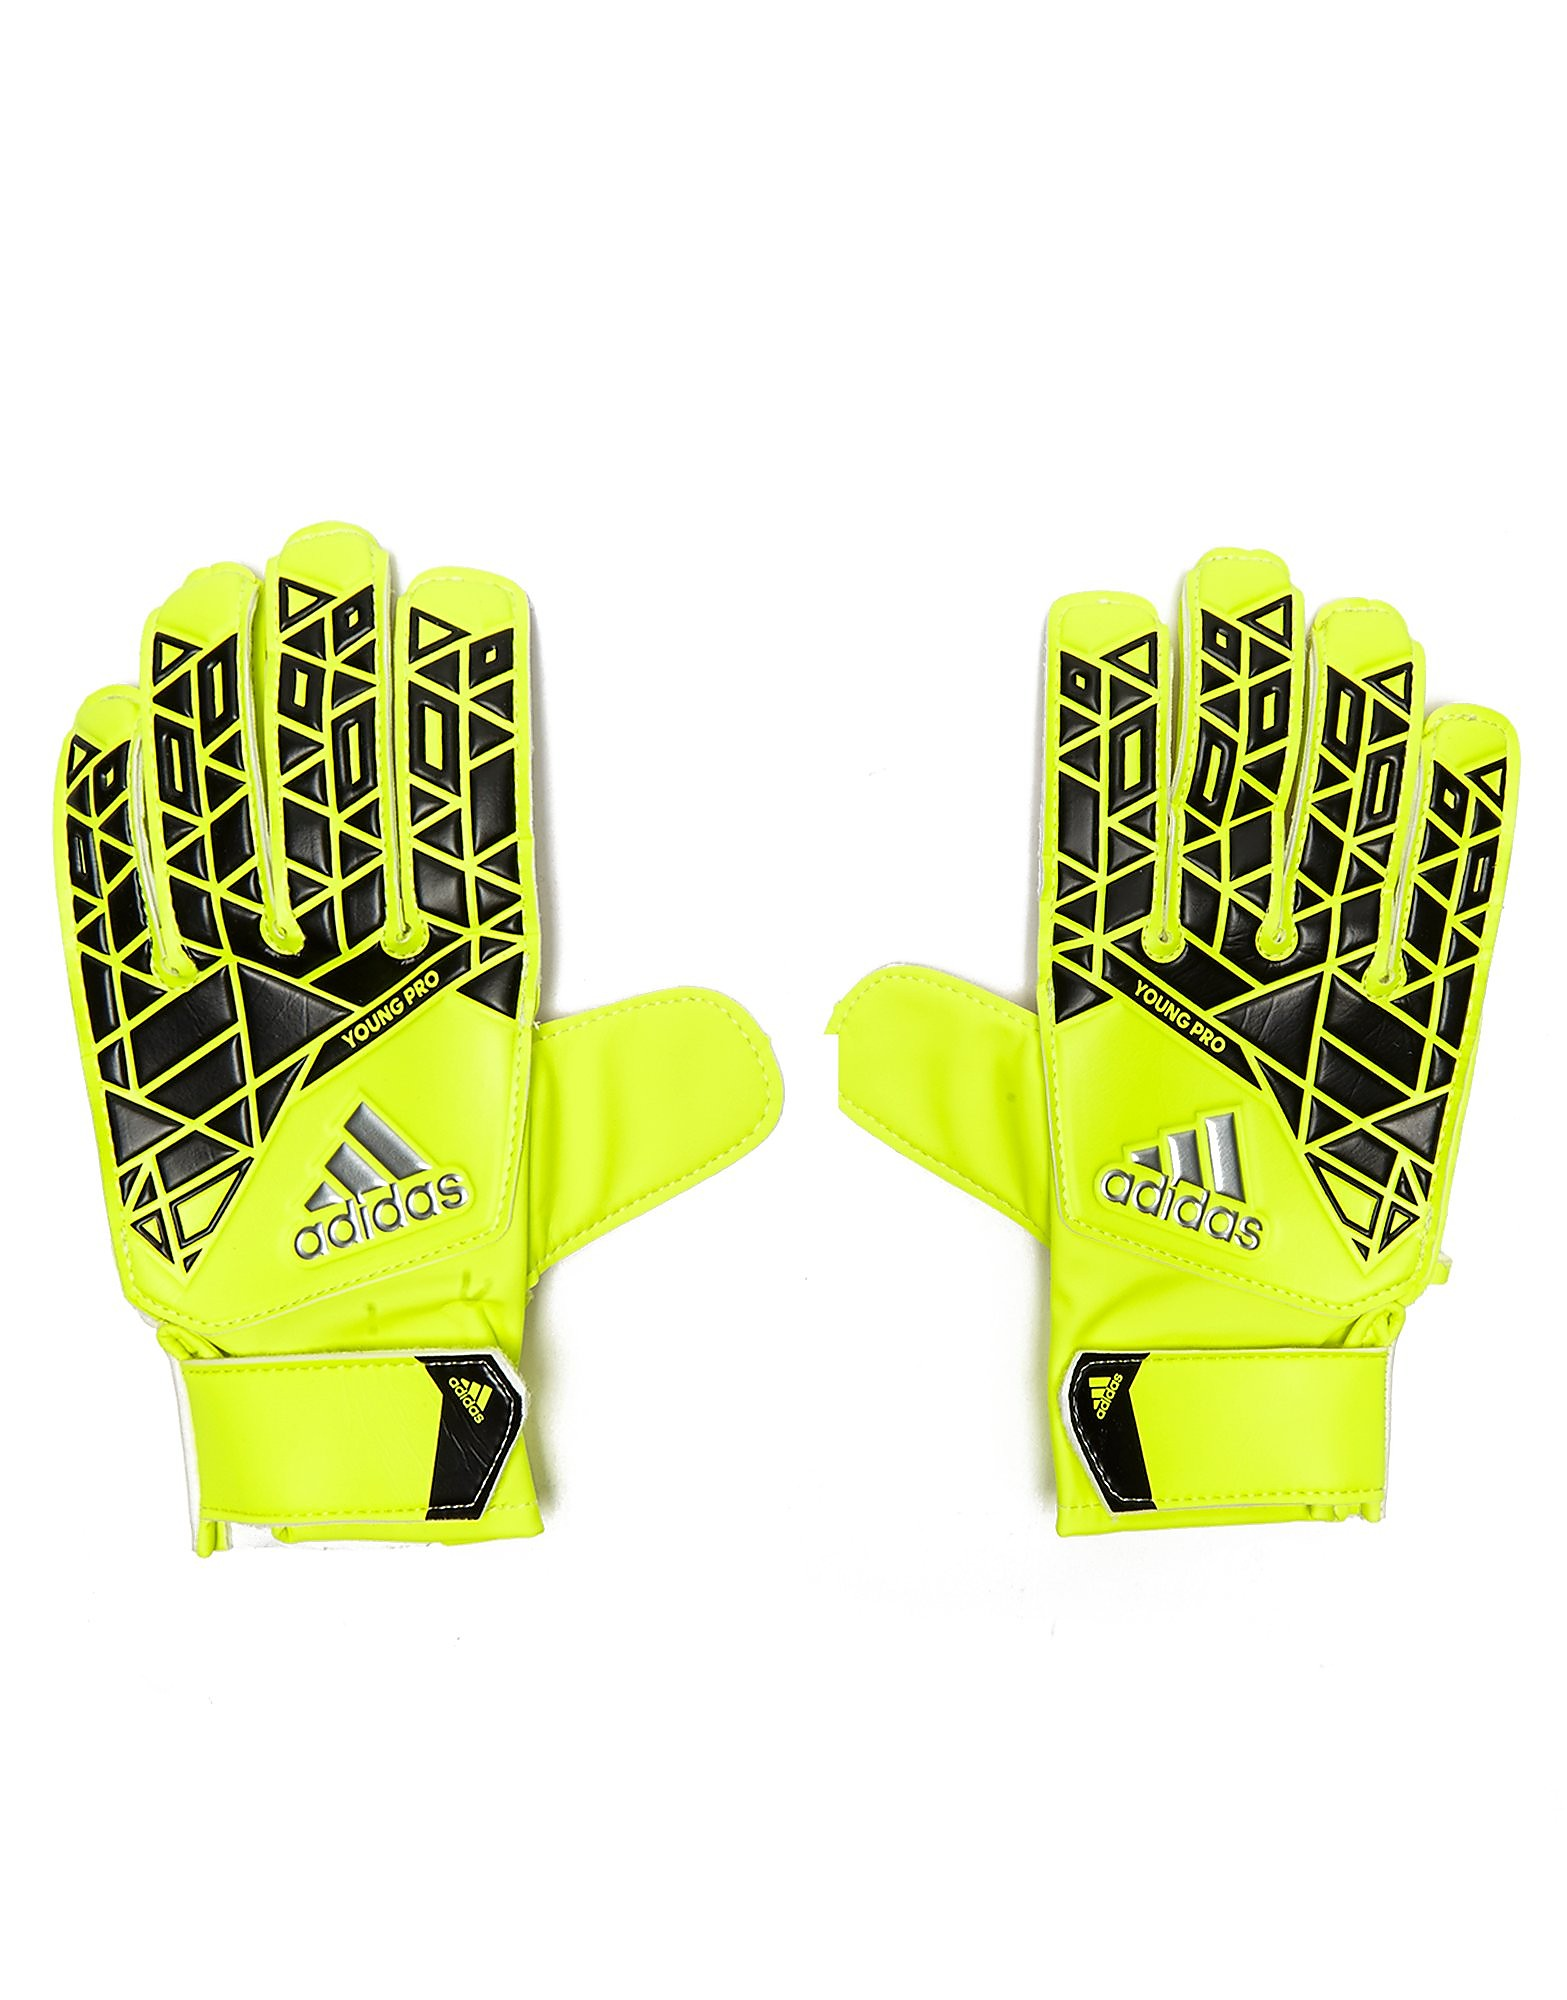 adidas Ace Young Pro Gloves